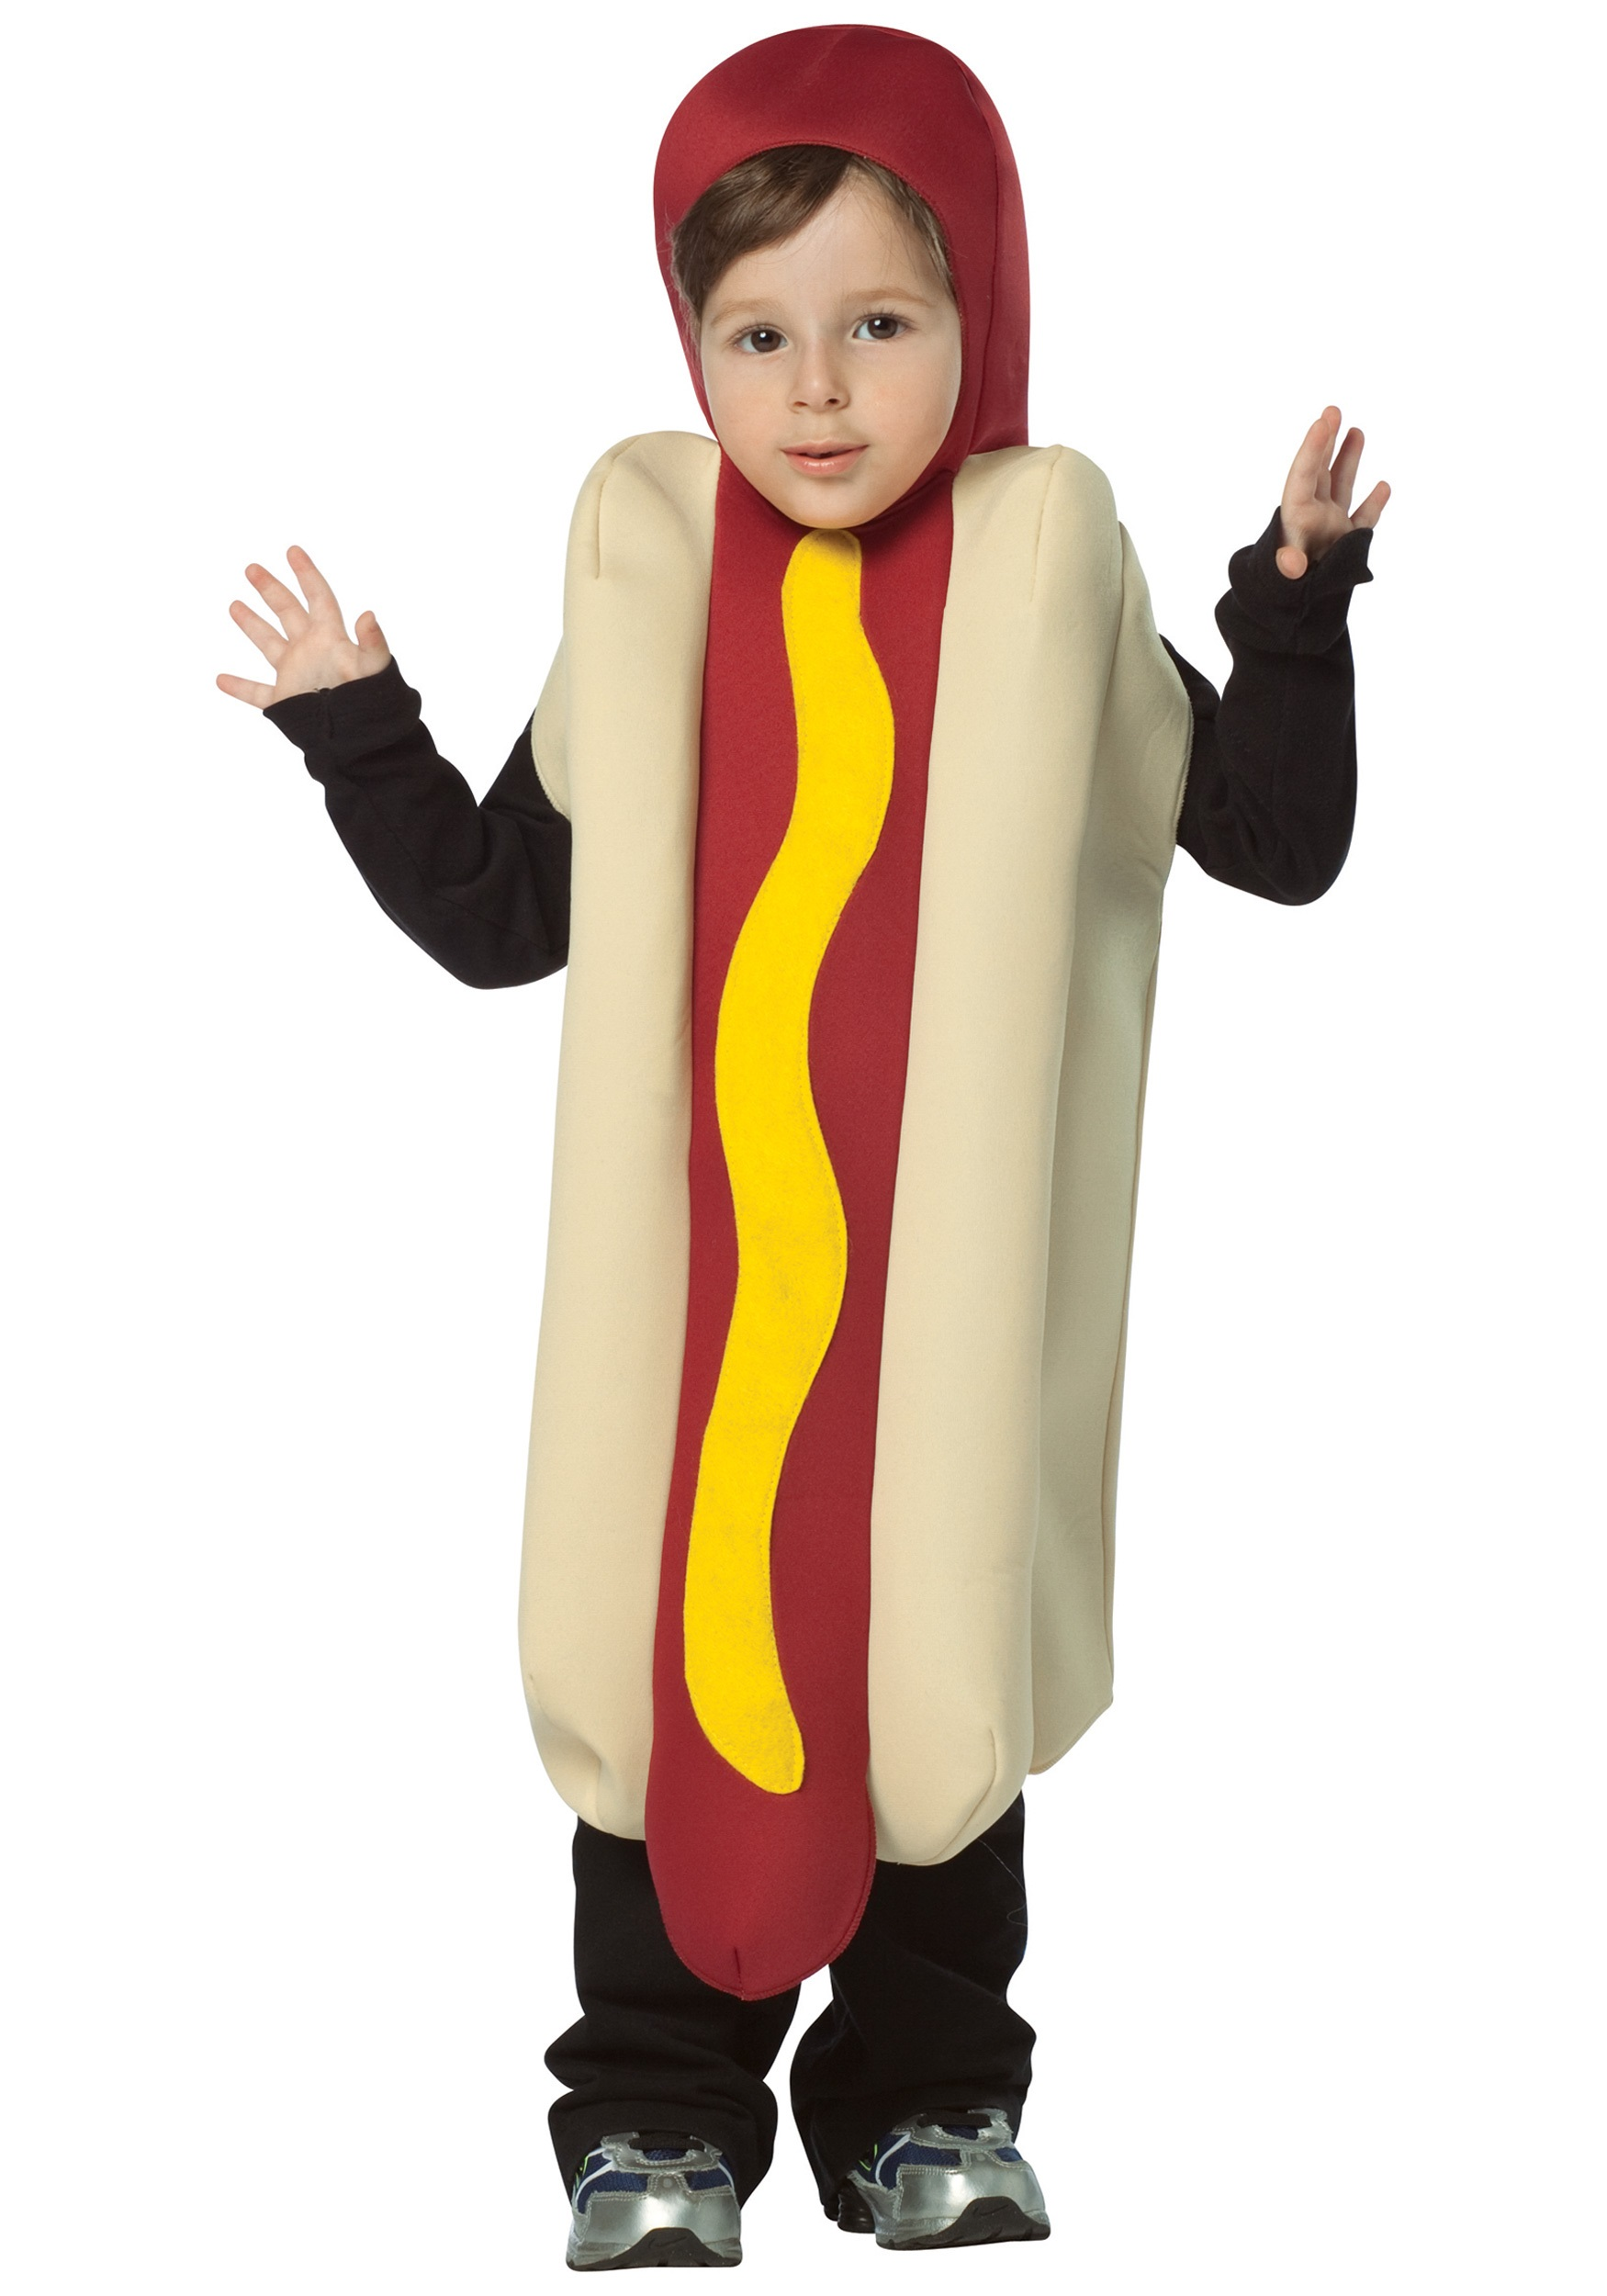 Toddler S Halloween Costumes | Toddler Hotdog Costume Food Costumes Funny Costumes